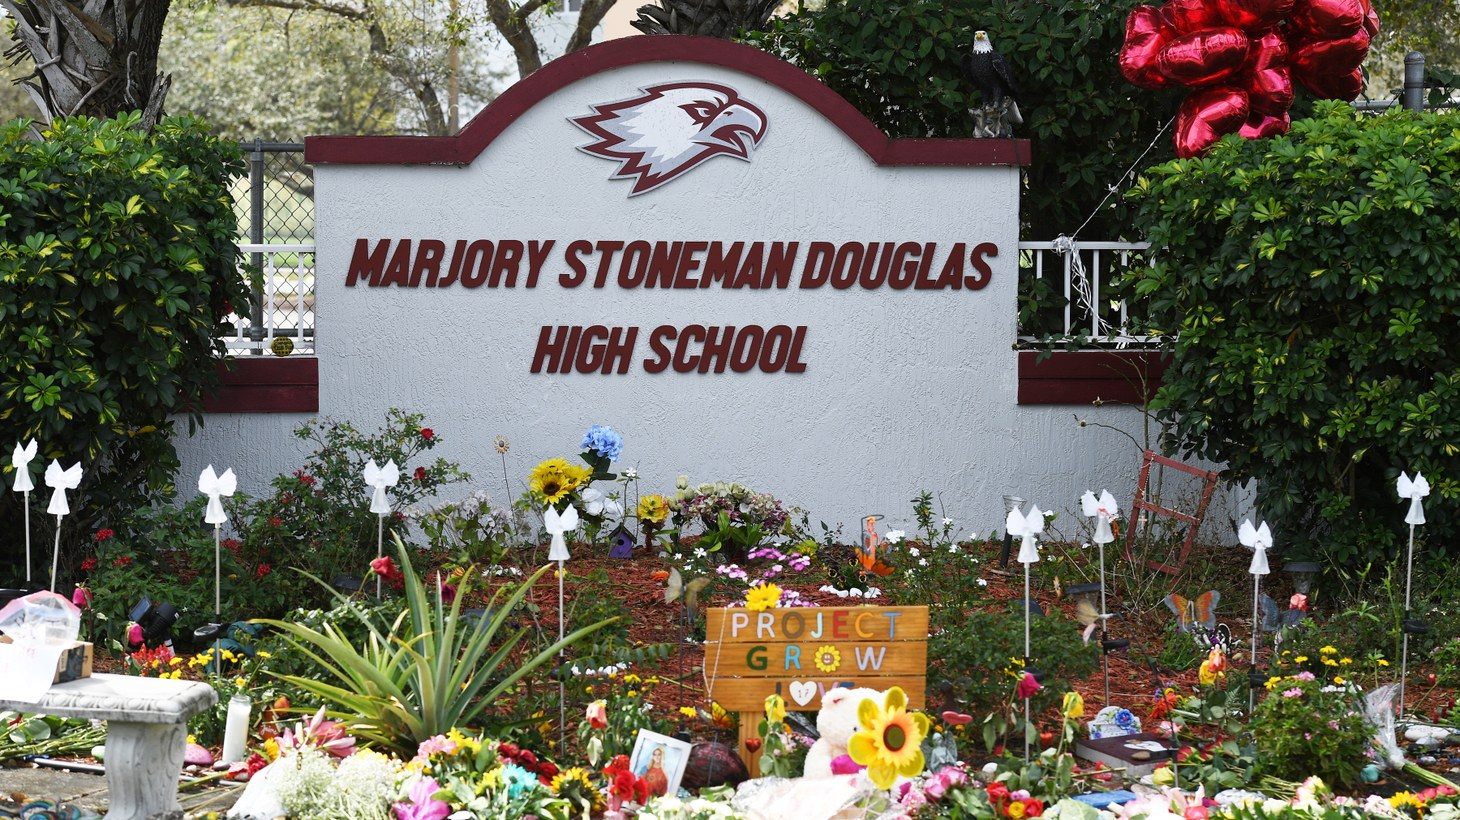 A memorial is set up at Marjory Stoneman Douglas High School in Parkland, Florida, February 14, 2021. It marks the three-year anniversary of the mass shooting that broke out there on February 14, 2018. Three staff members and 14 students were killed in the shooting.